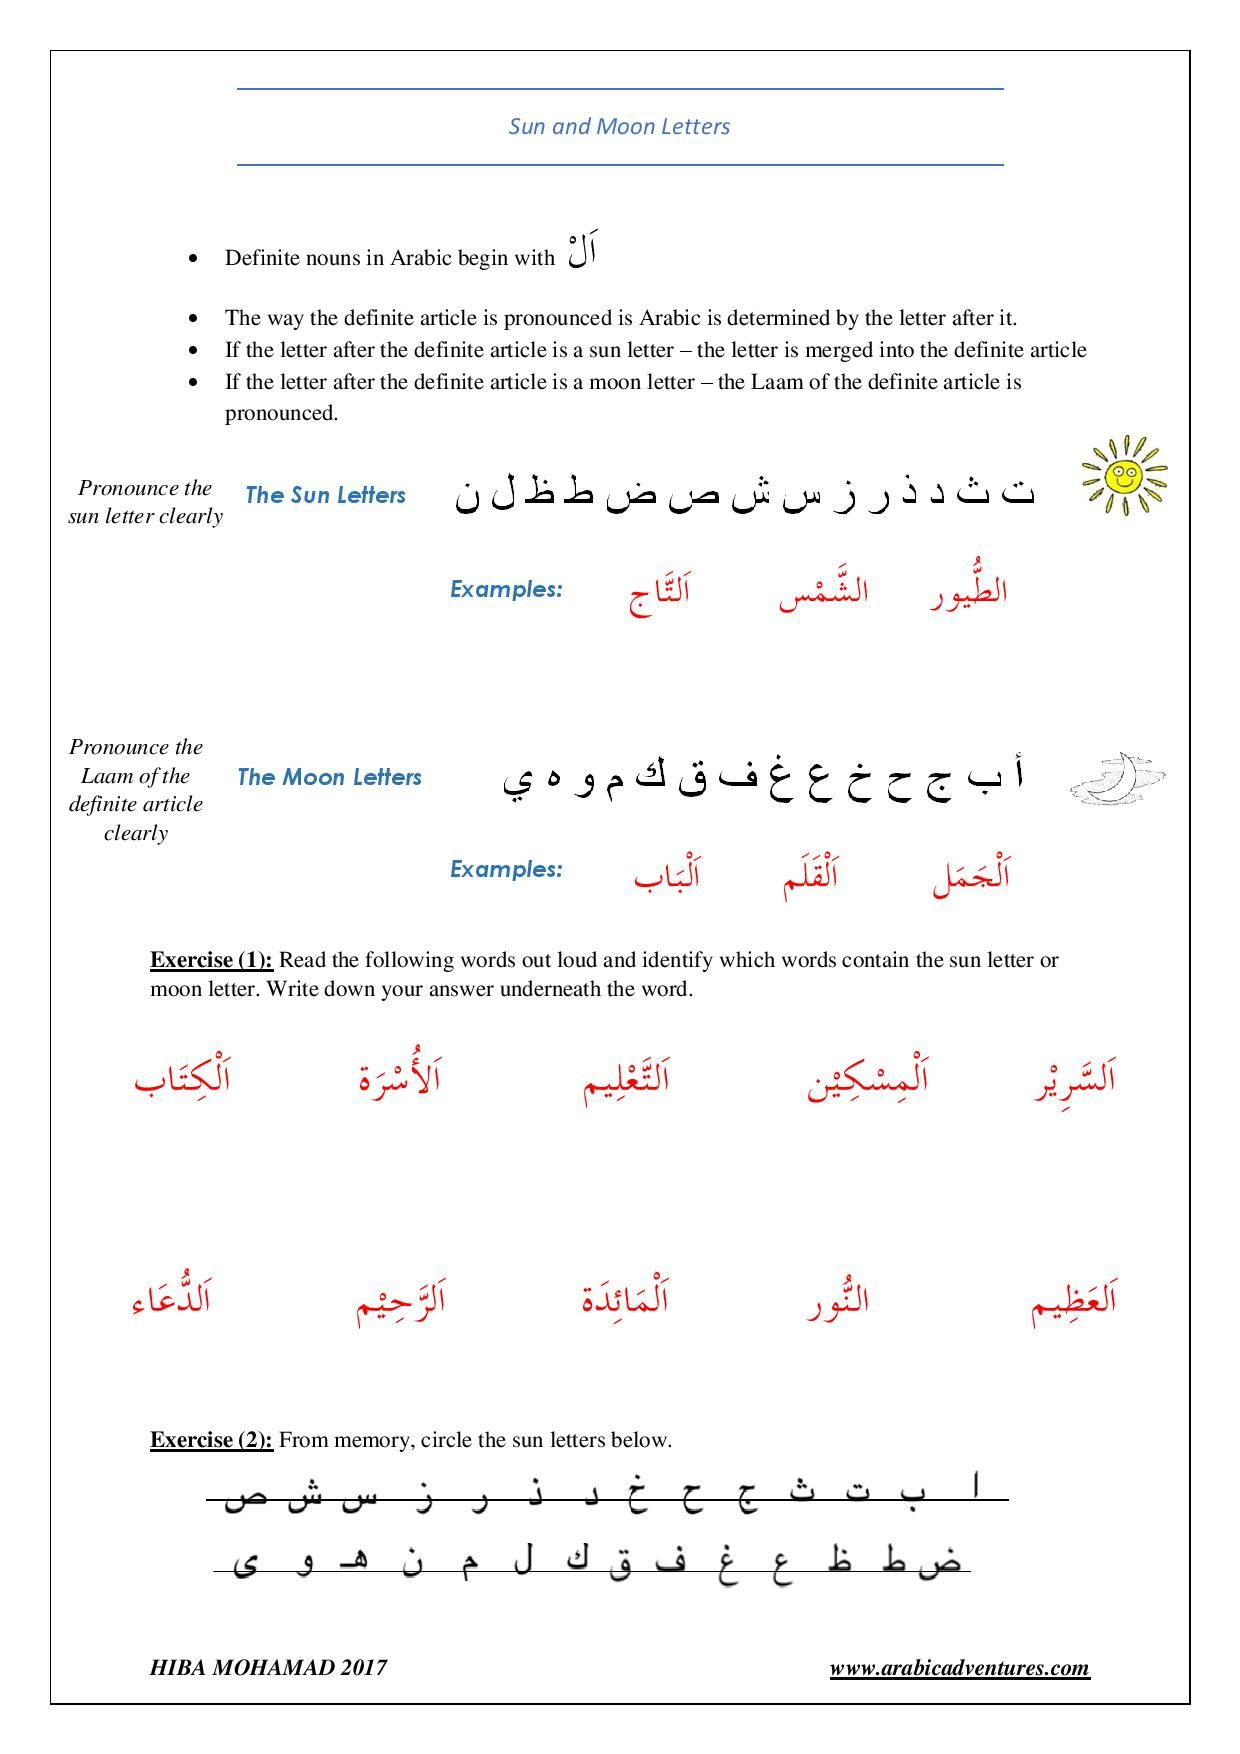 Sun And Moon Letters In Arabic Worksheet